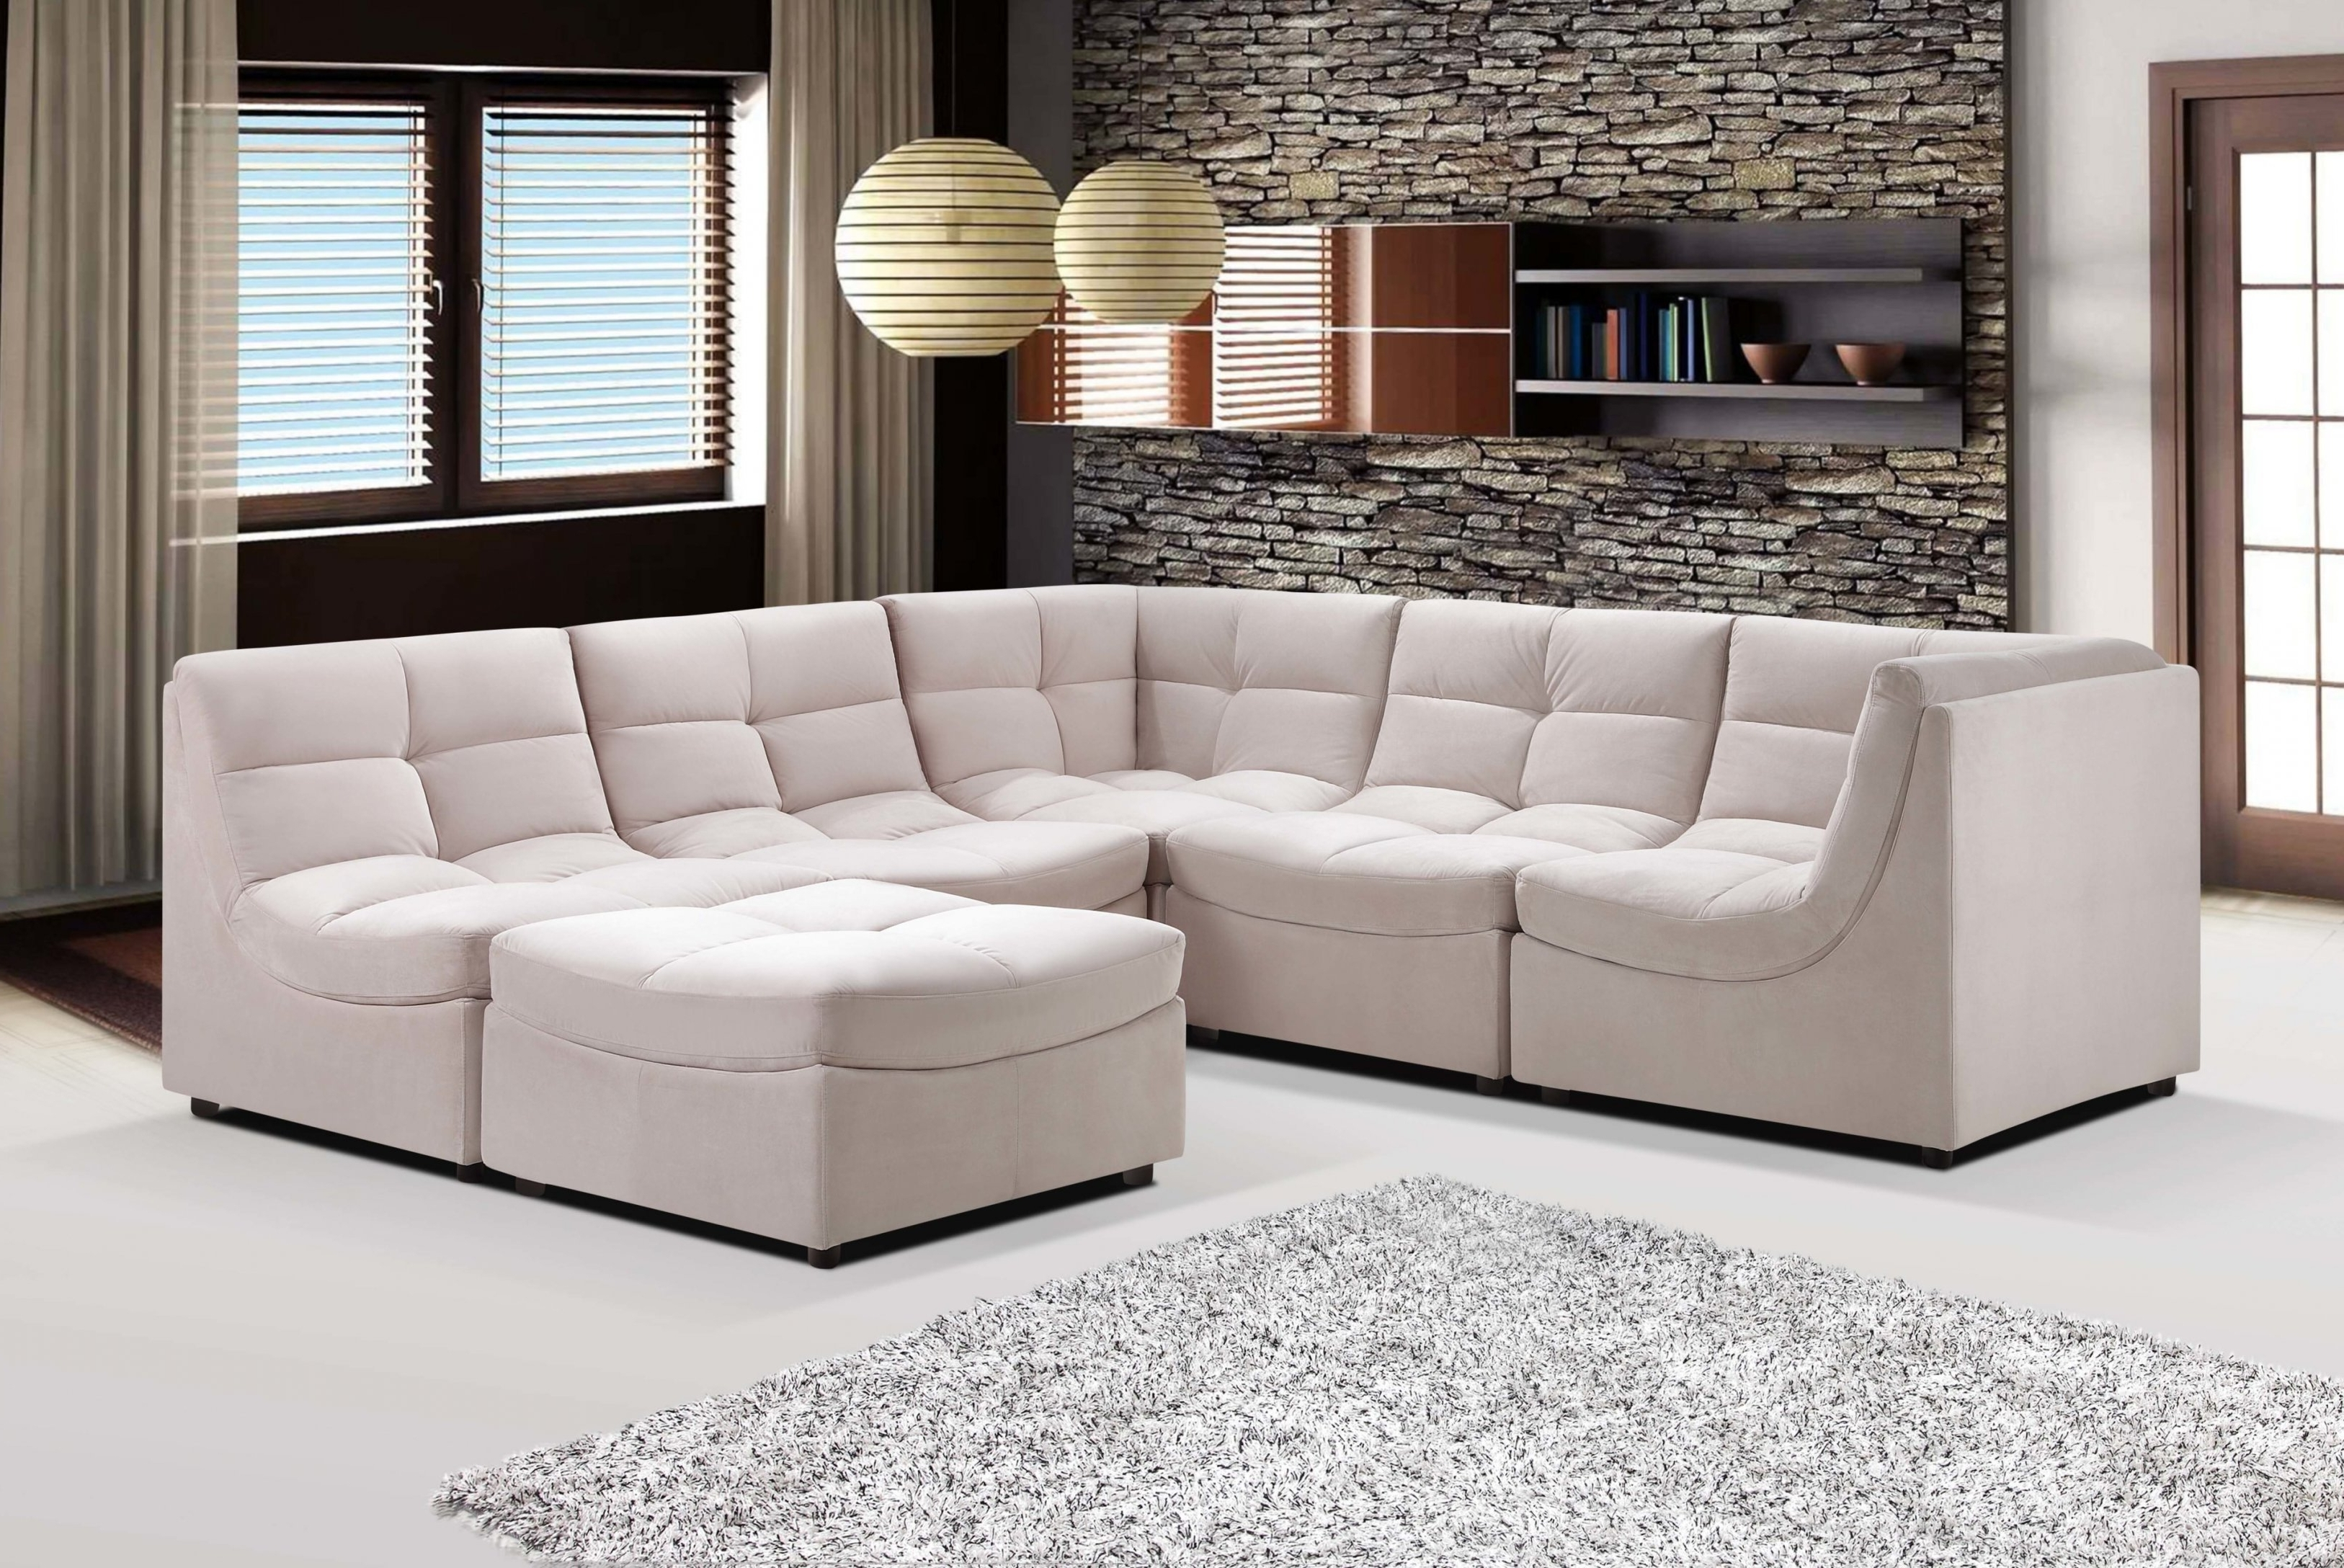 Fashionable Modular Sectional Sofas In Small Modular Sectional Sofa 21 For Your Sofa Sectionals For Cloud (View 13 of 20)